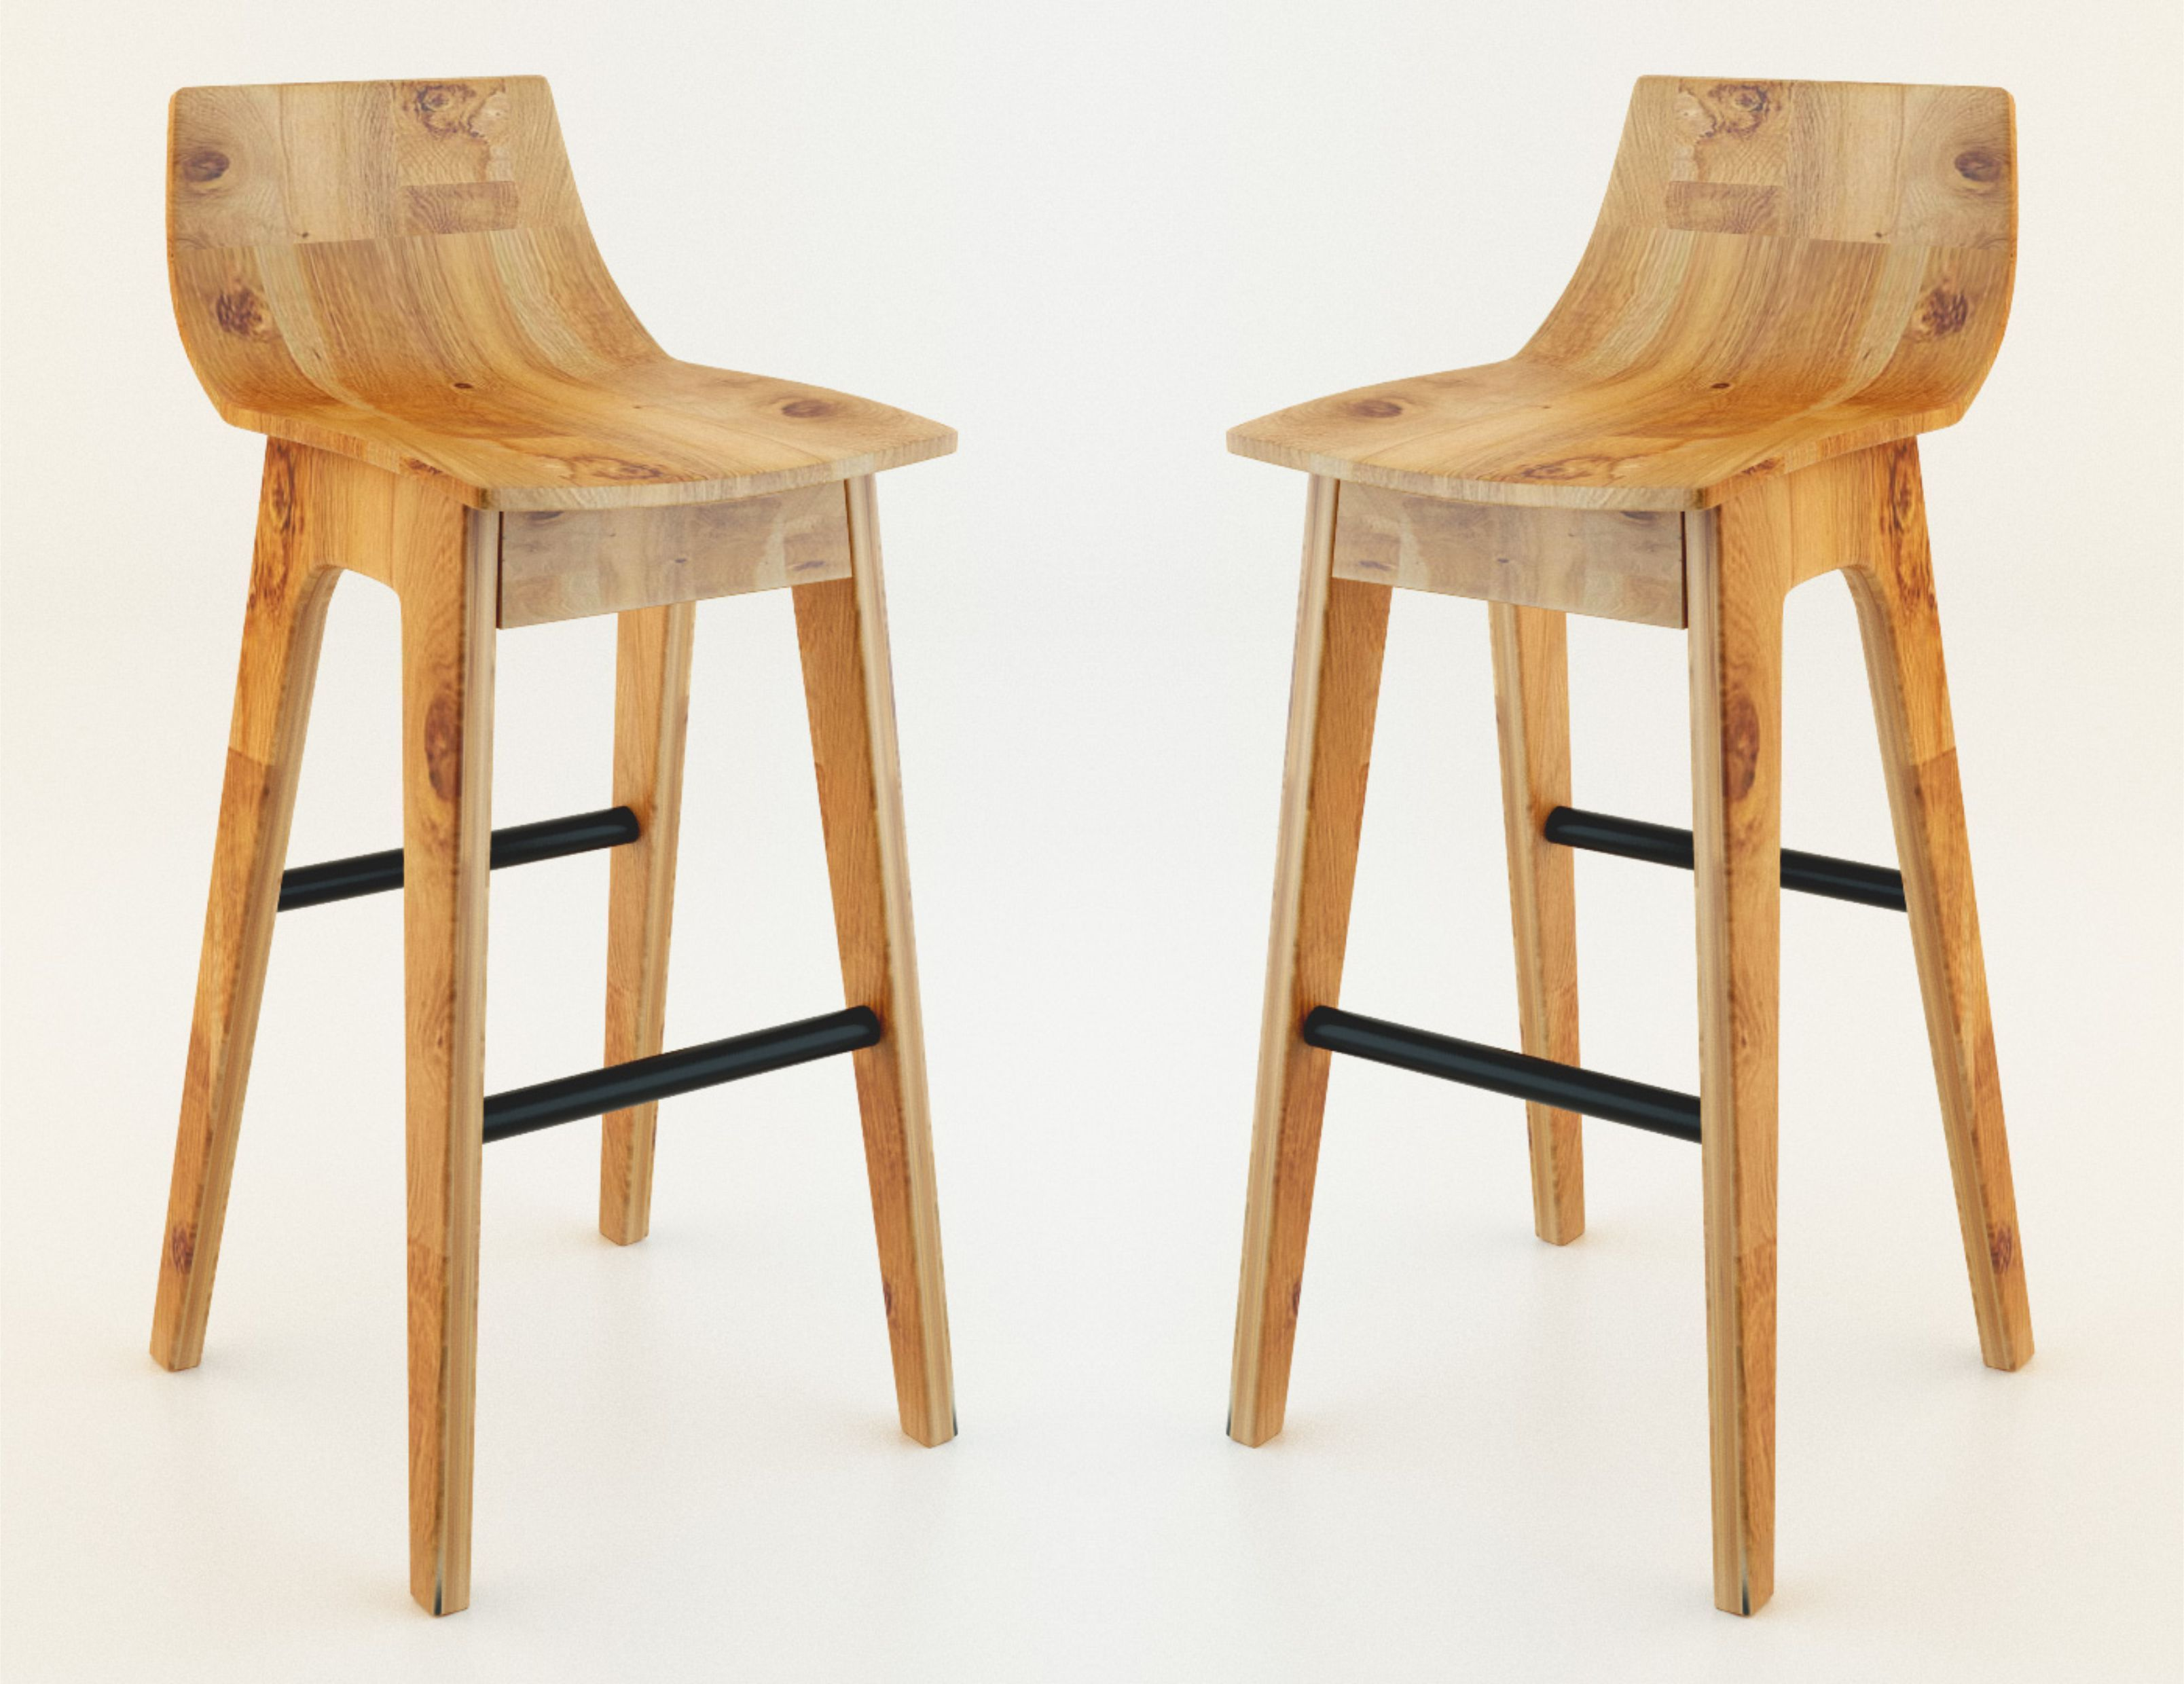 chair stools wooden eames replica chairs melbourne bar stool 3d model max cgtrader